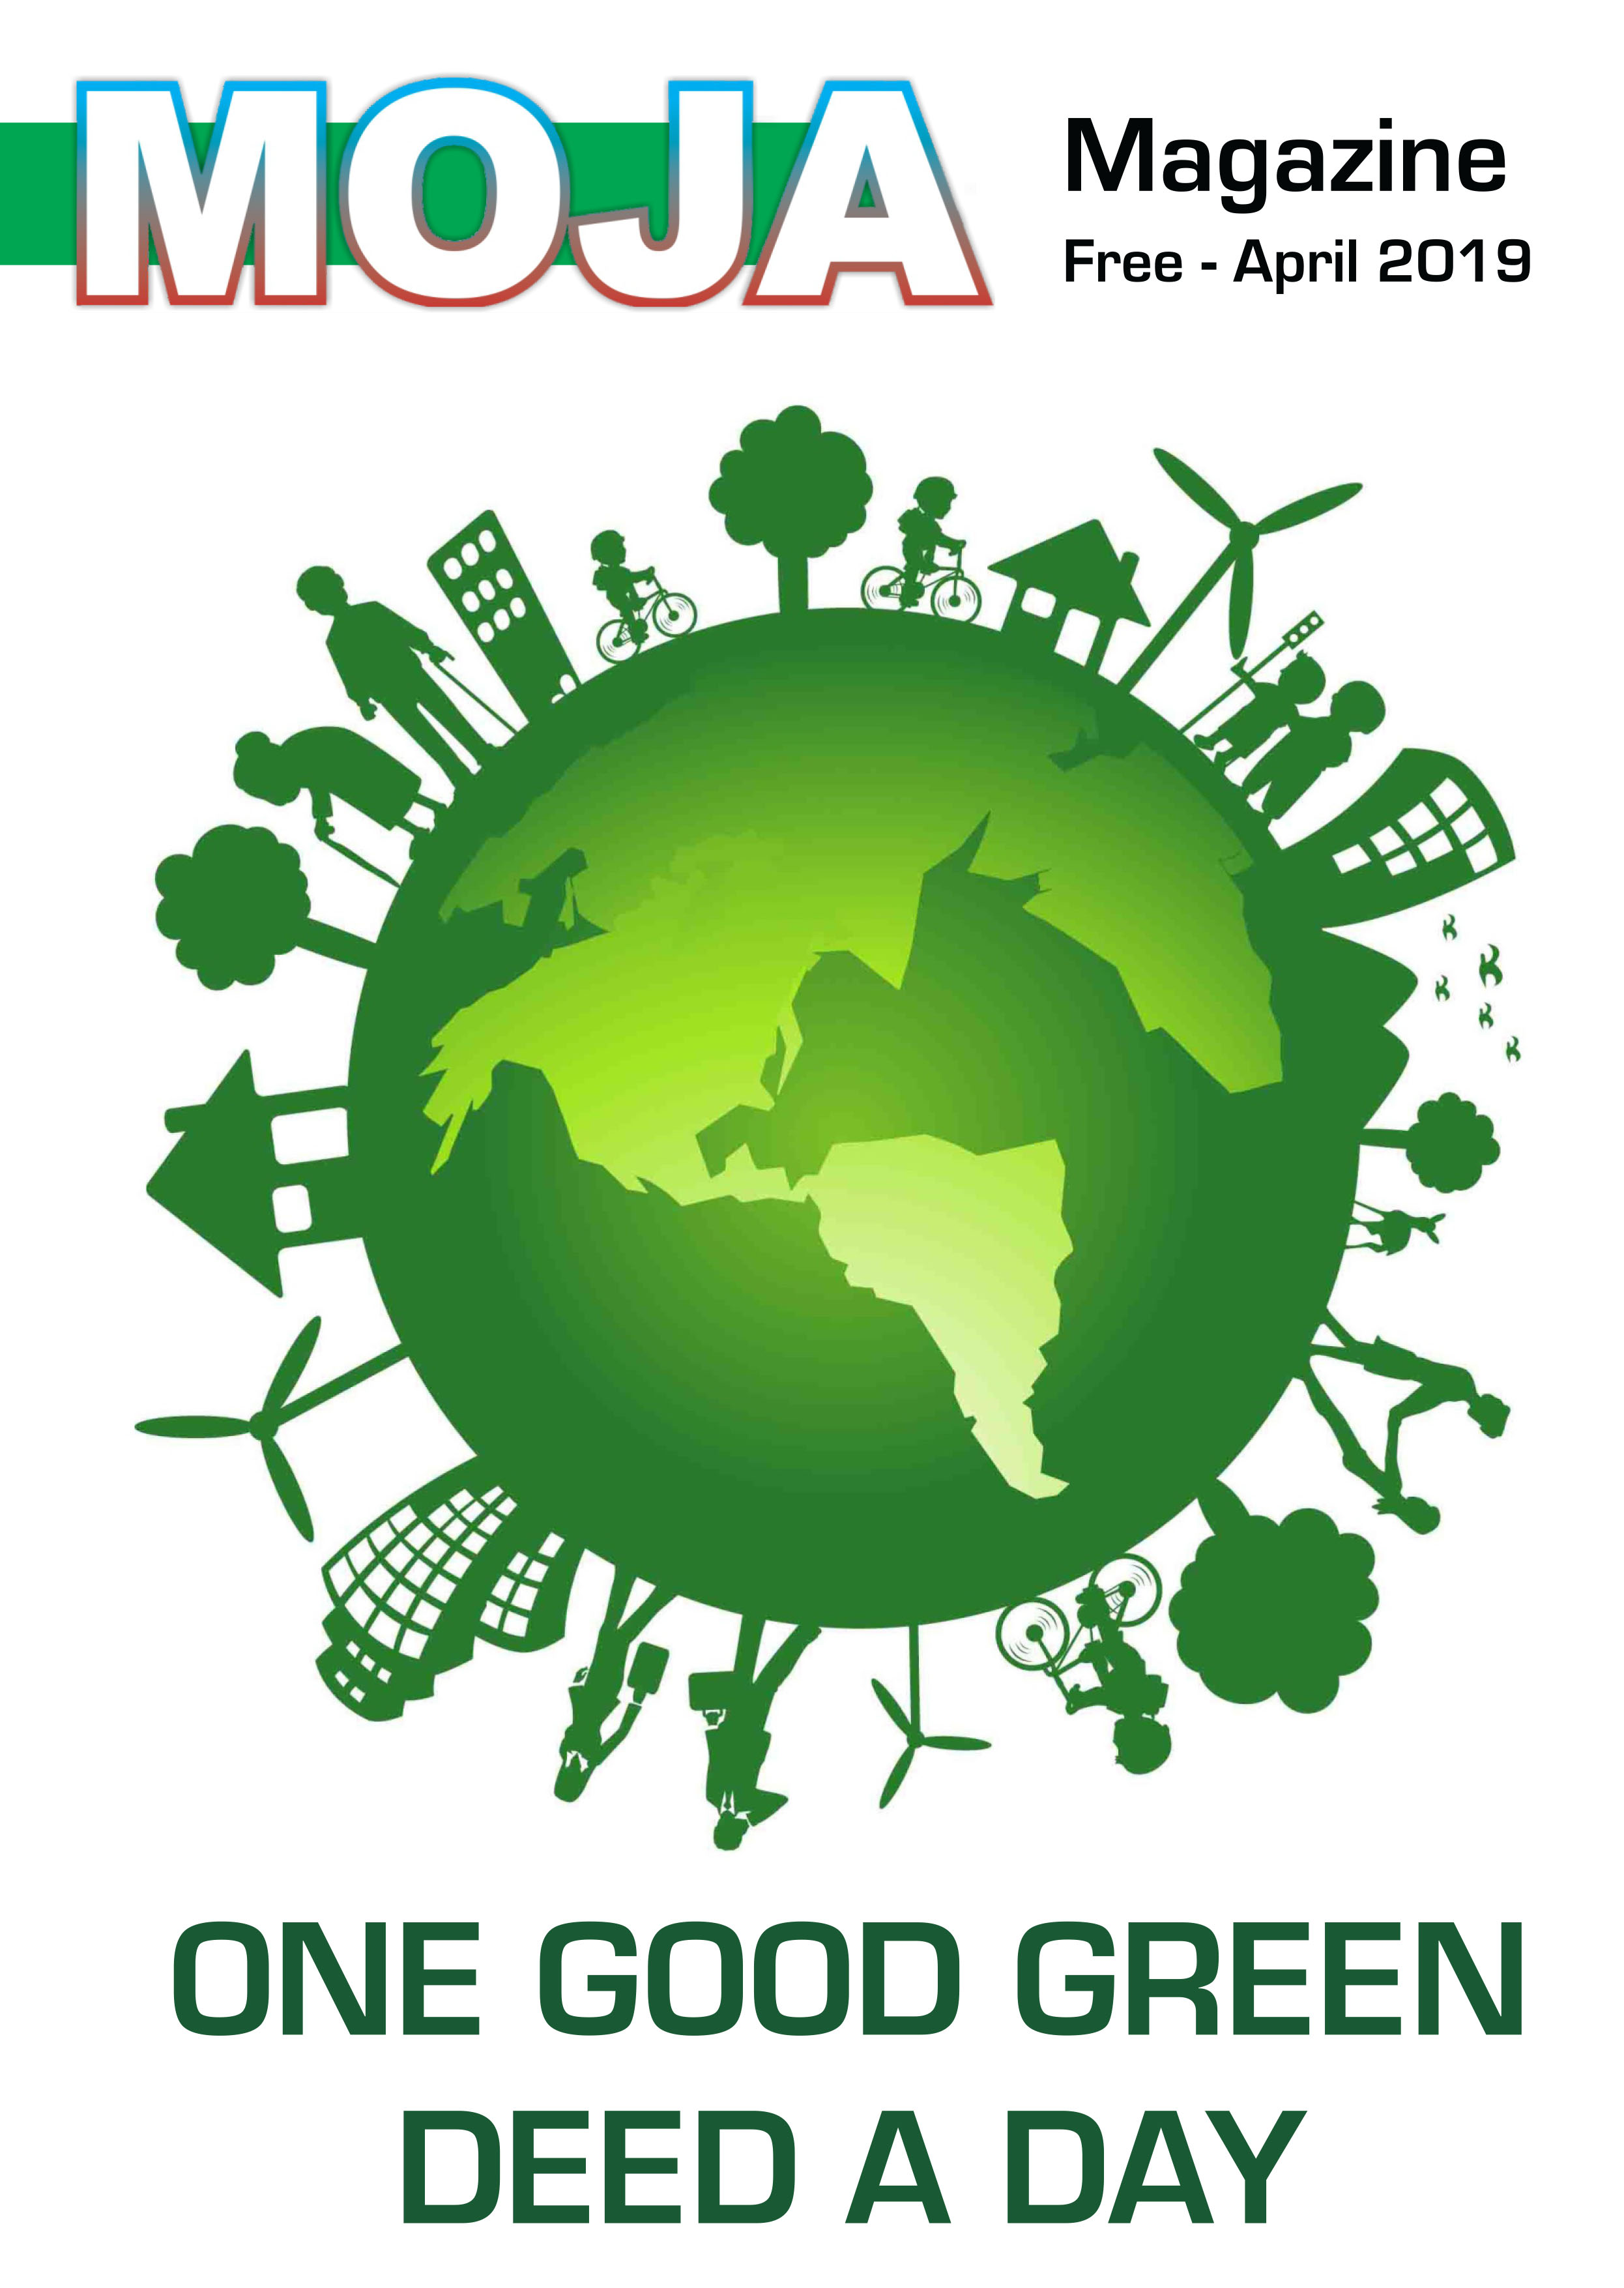 ONE GOOD GREEN DEED A DAY